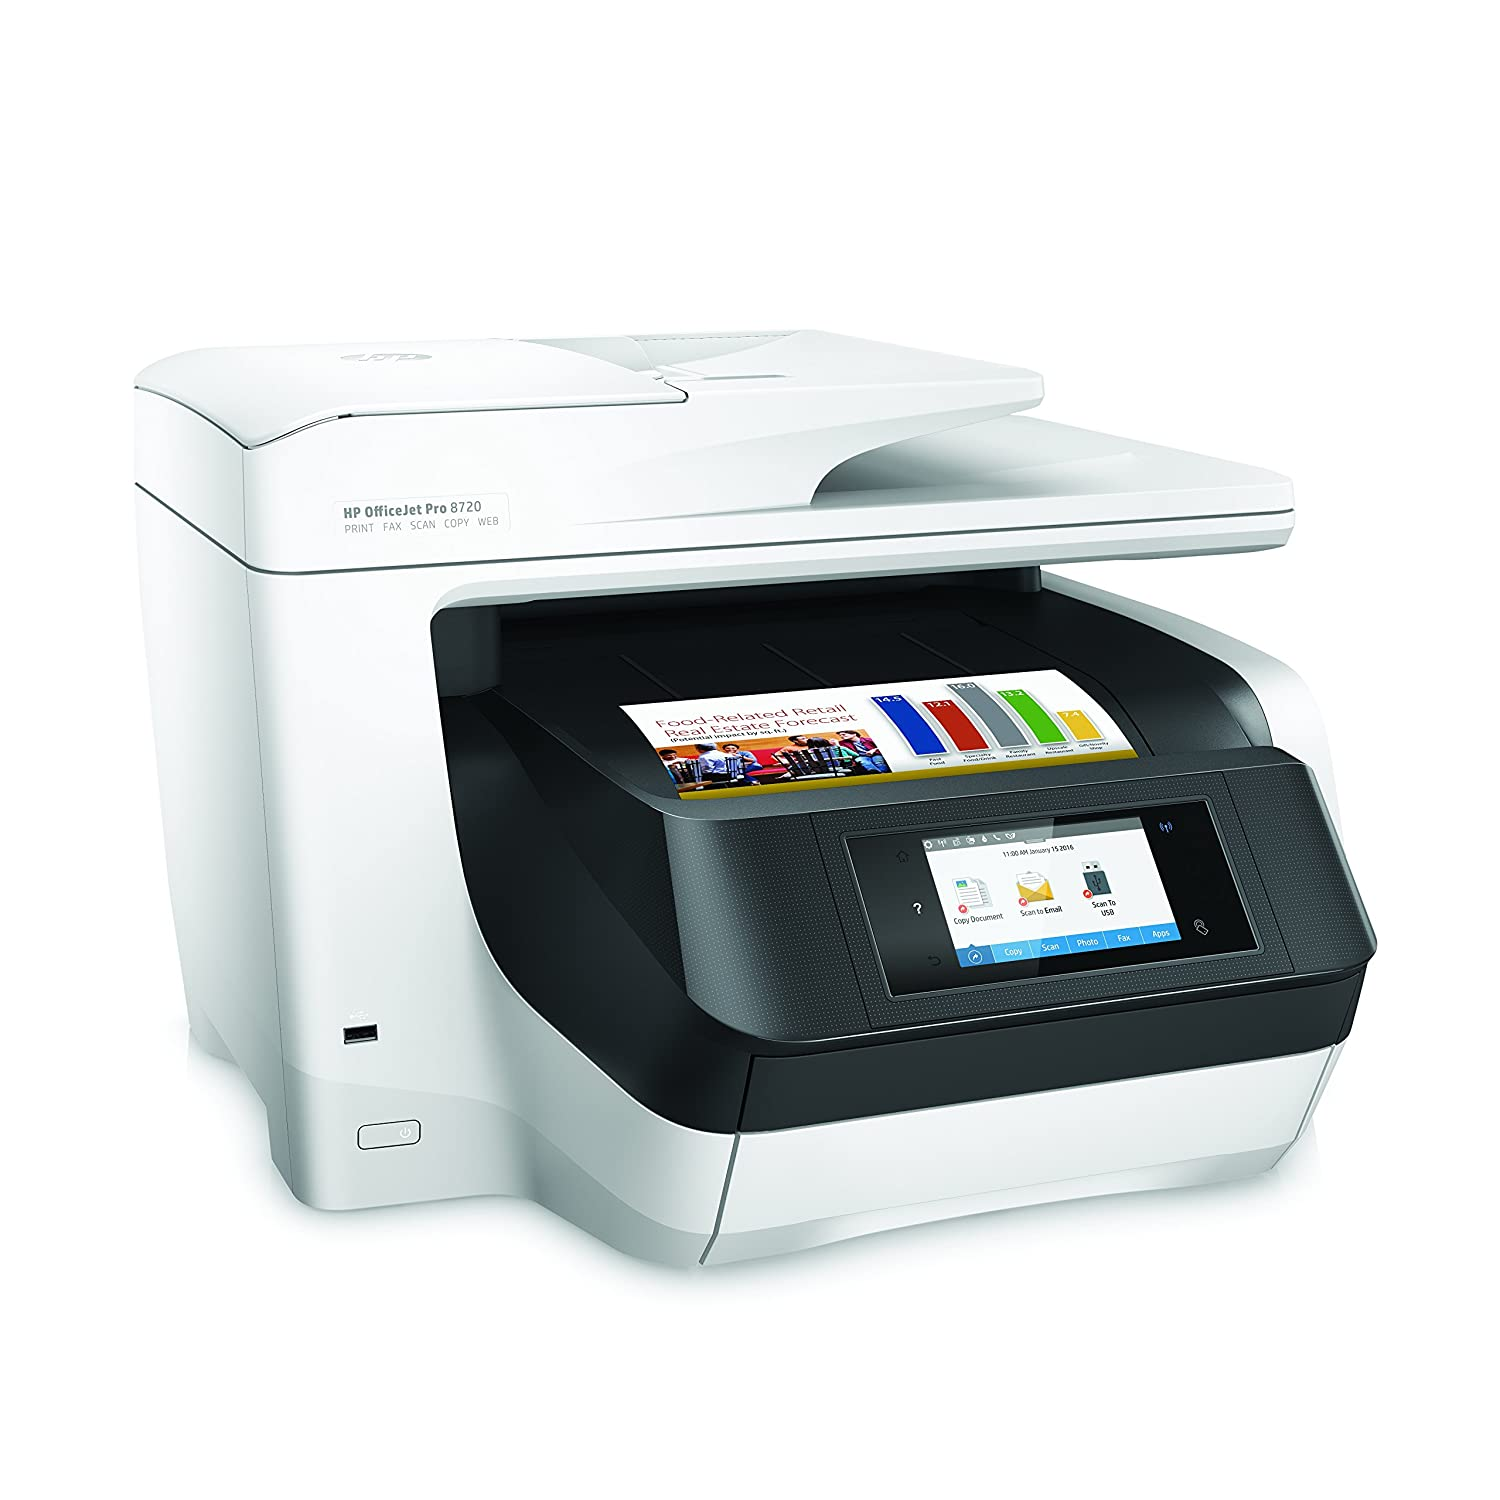 Color printing cost per page in india - Amazon Com Hp Officejet Pro 8720 Wireless All In One Photo Printer With Mobile Printing Instant Ink Electronics